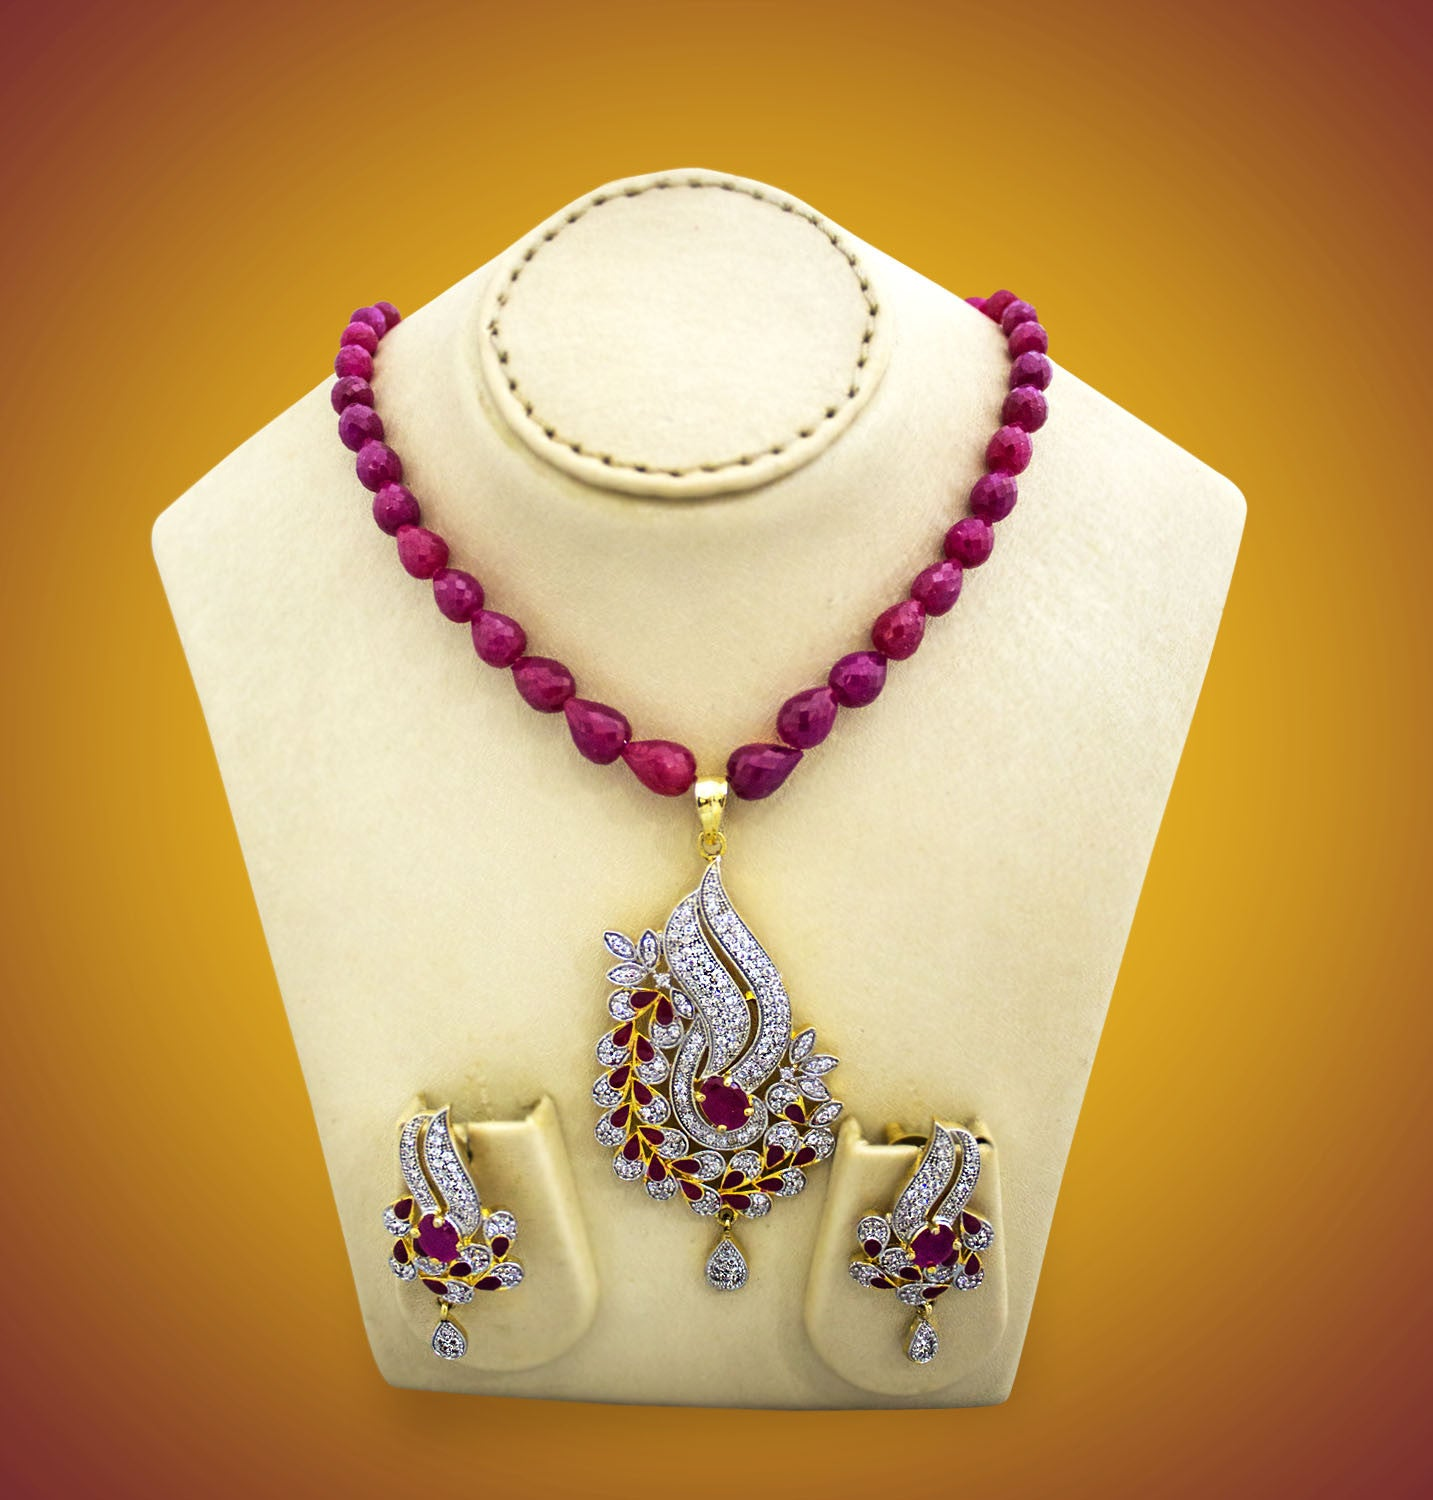 Treated ruby gemstone necklace with stone pendants and earrings treated ruby gemstone necklace with stone pendants and earrings aloadofball Images